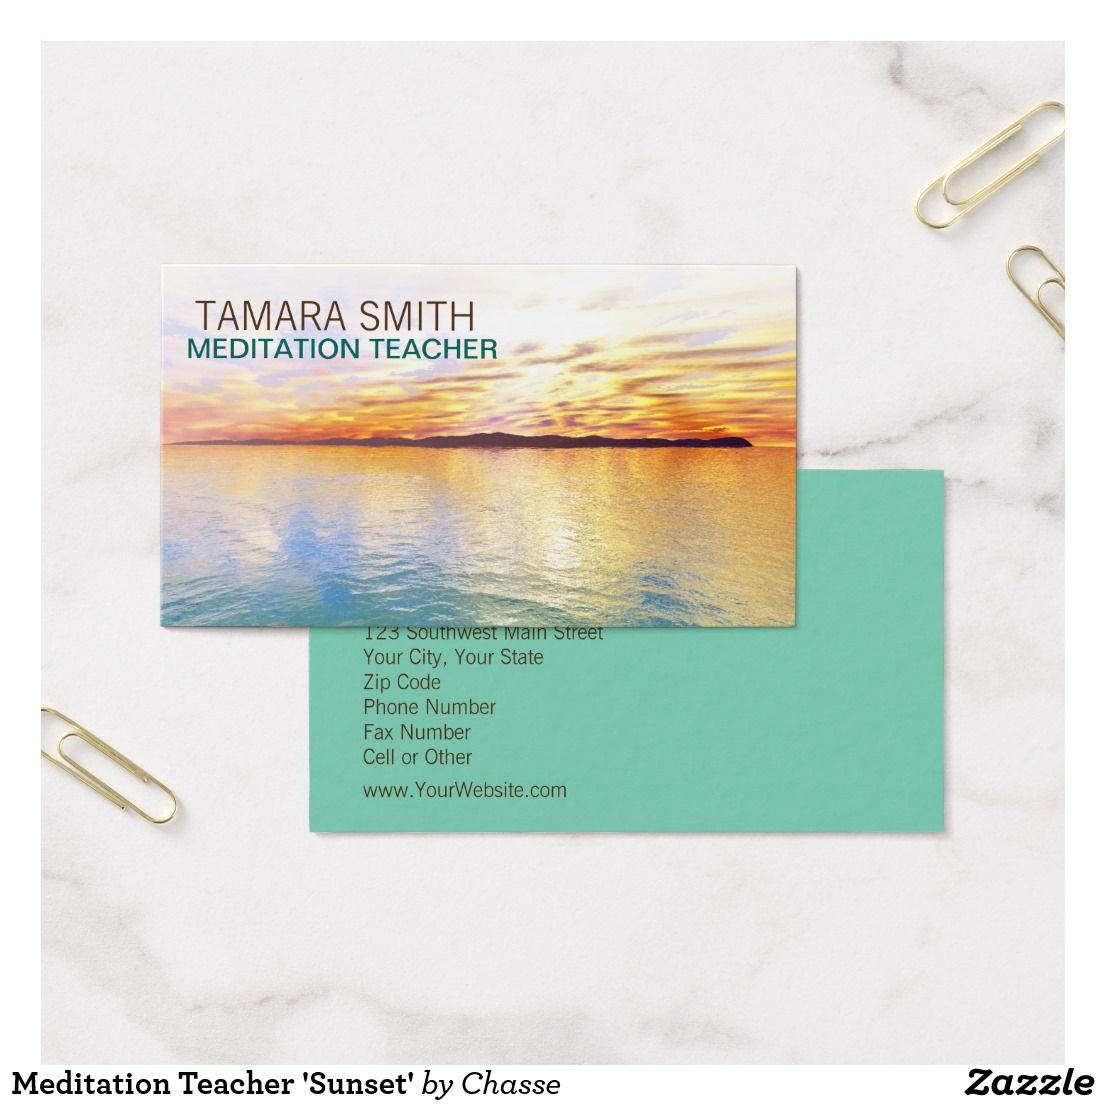 Meditation Teacher 'Sunset' Business Card